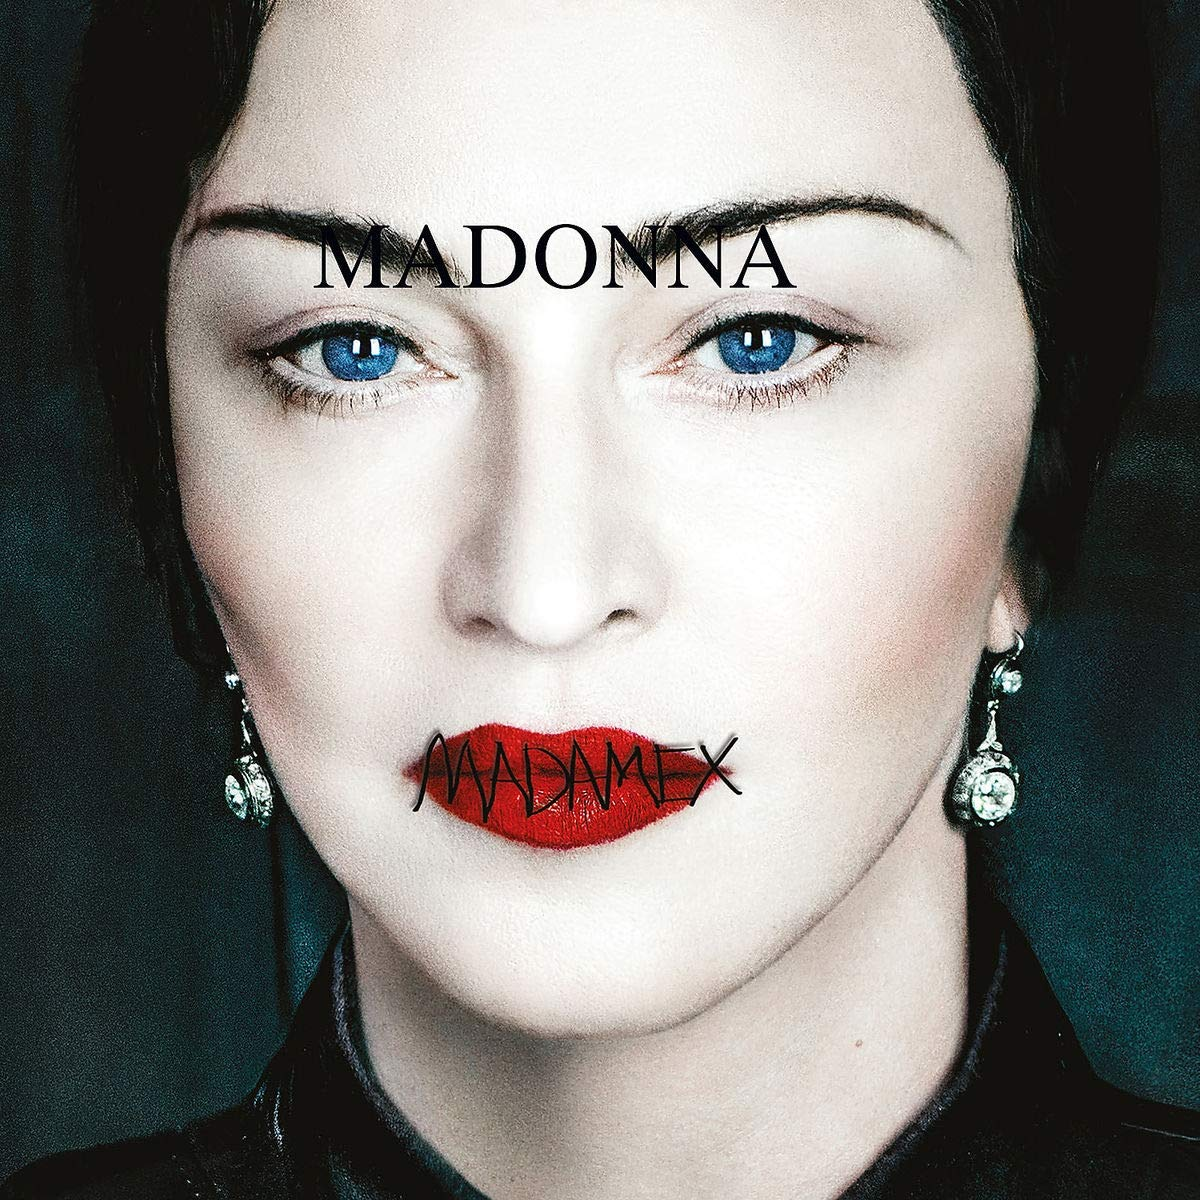 CD Shop - MADONNA MADAME X